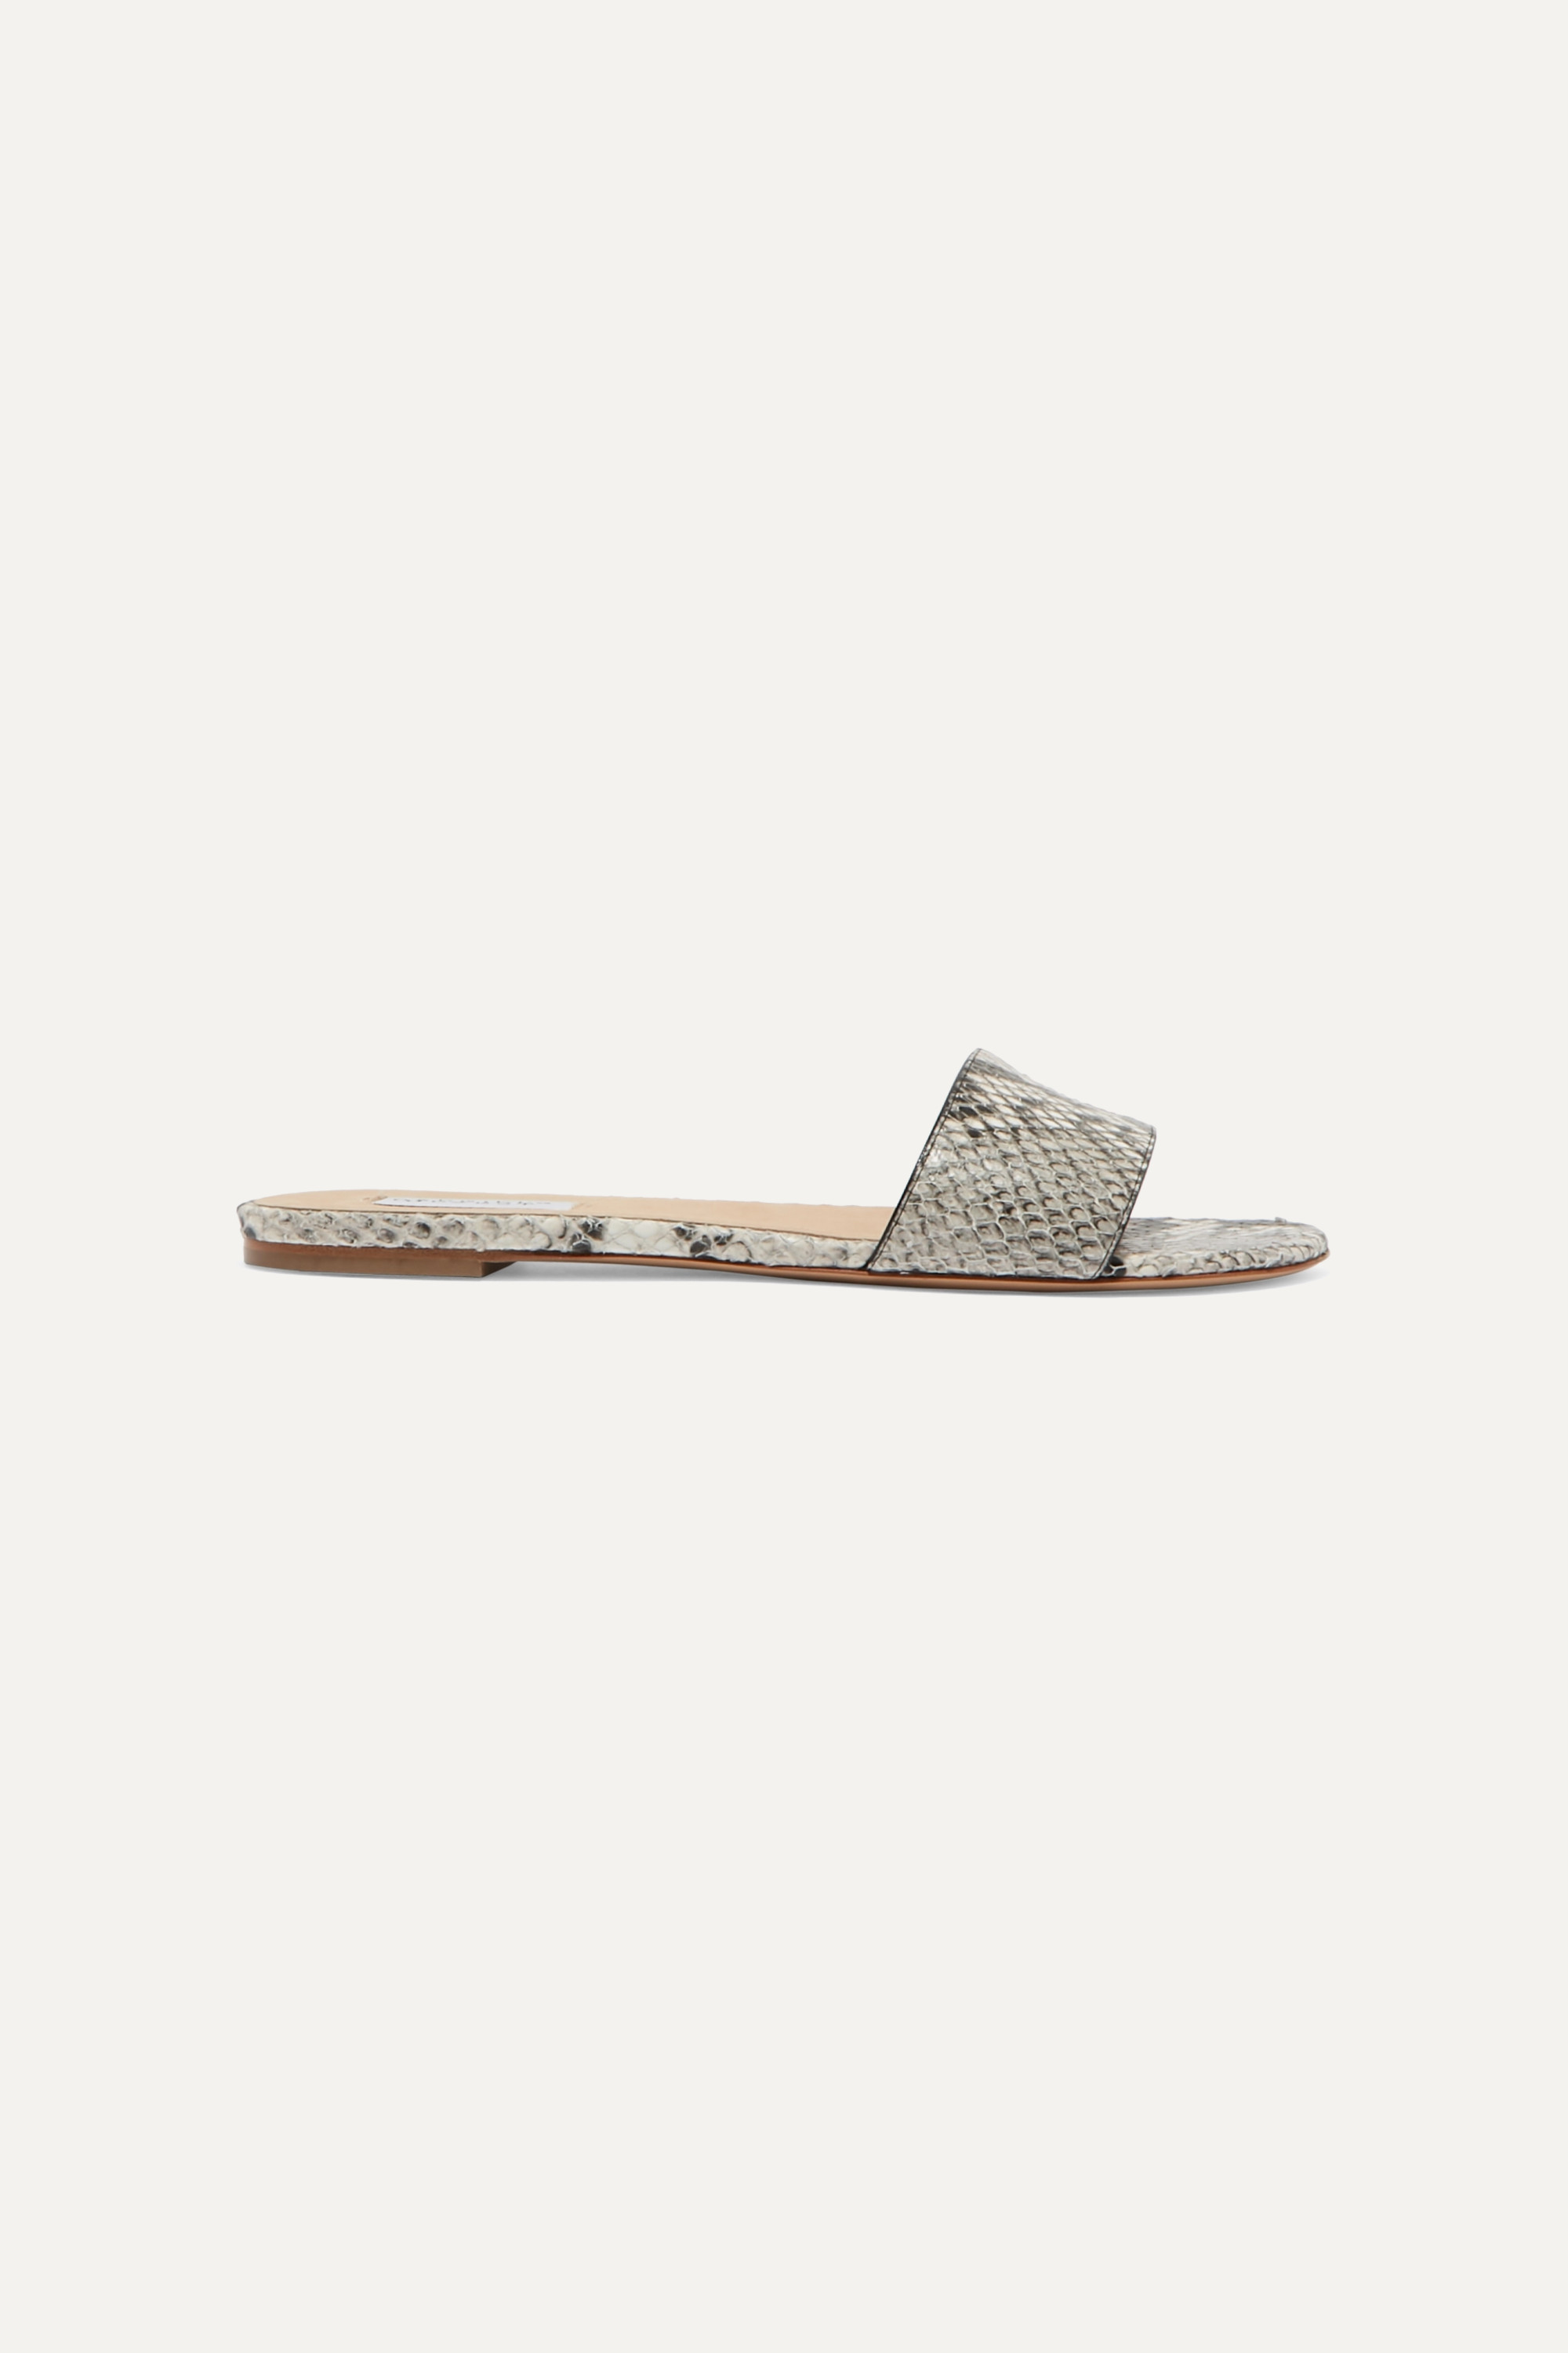 Gabriela Hearst Franzine snake-effect leather slides